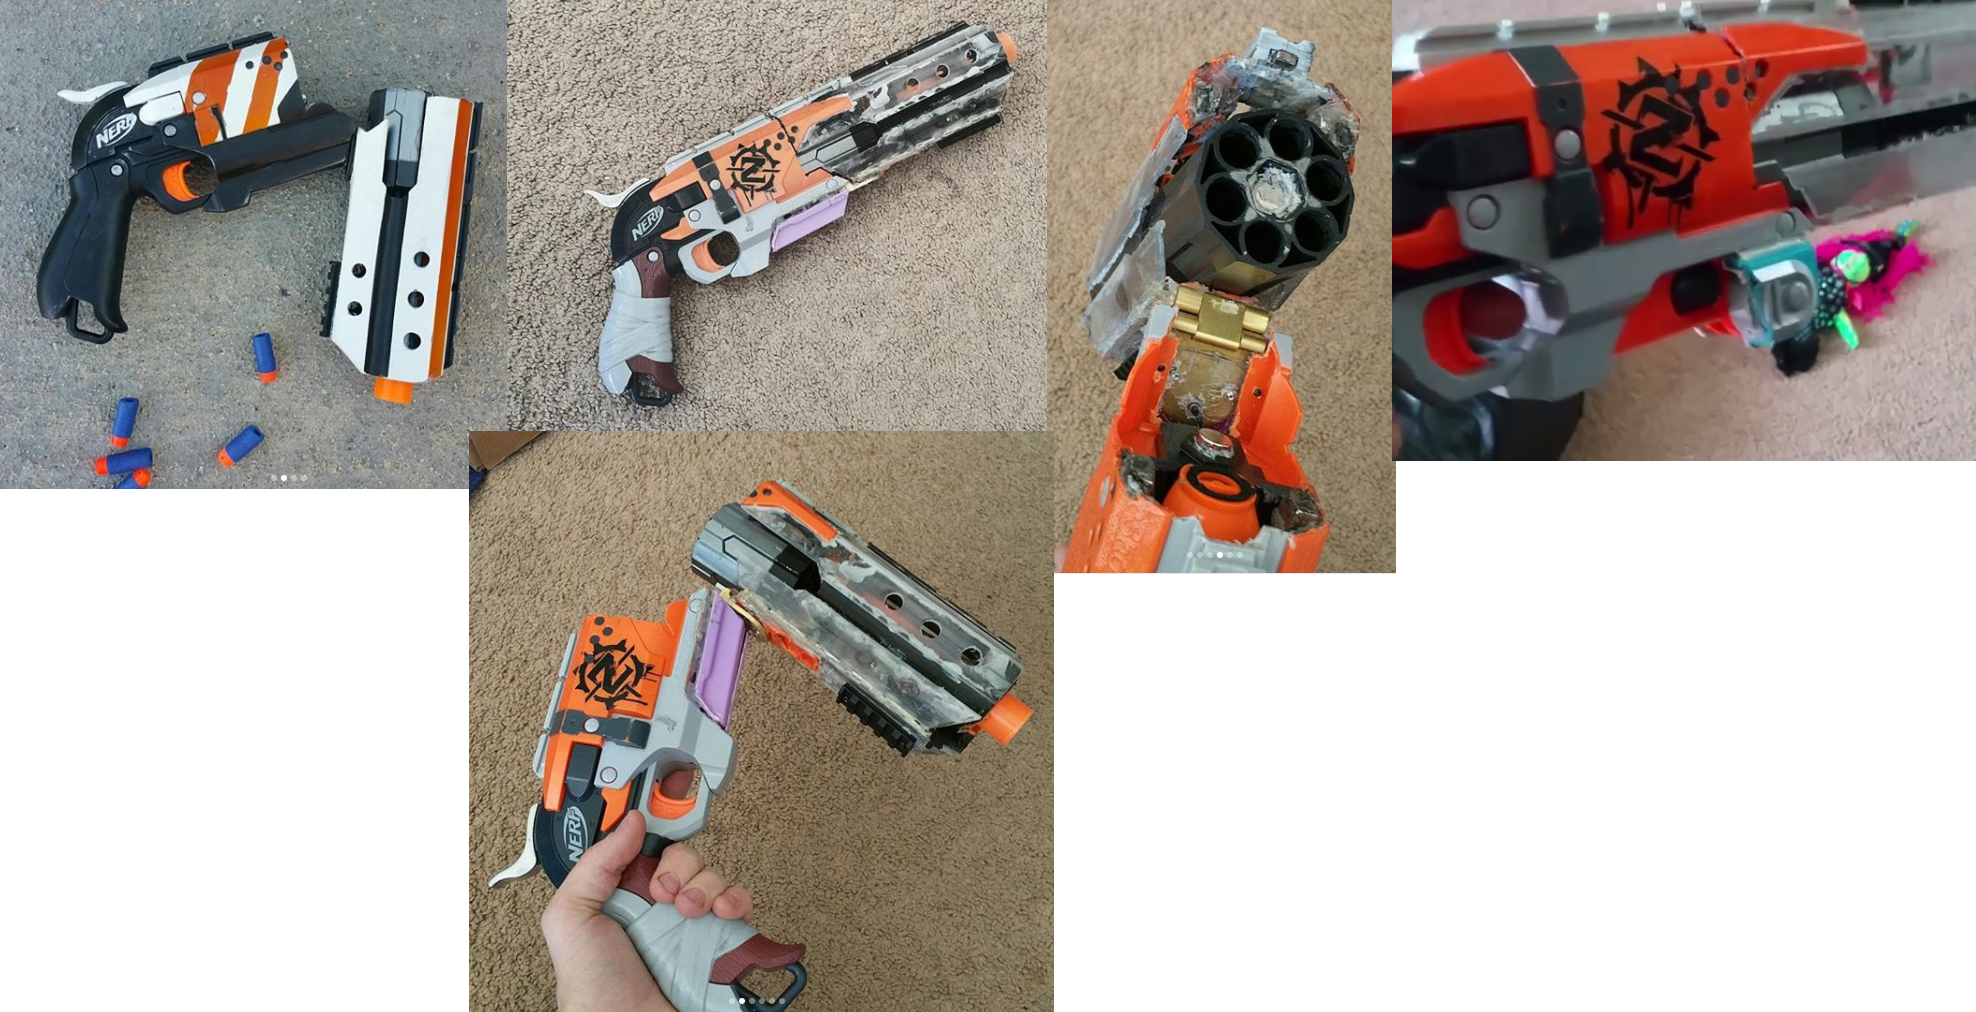 Break Action Hammershot Mod P 02 Nerf Mods And More Pinterest